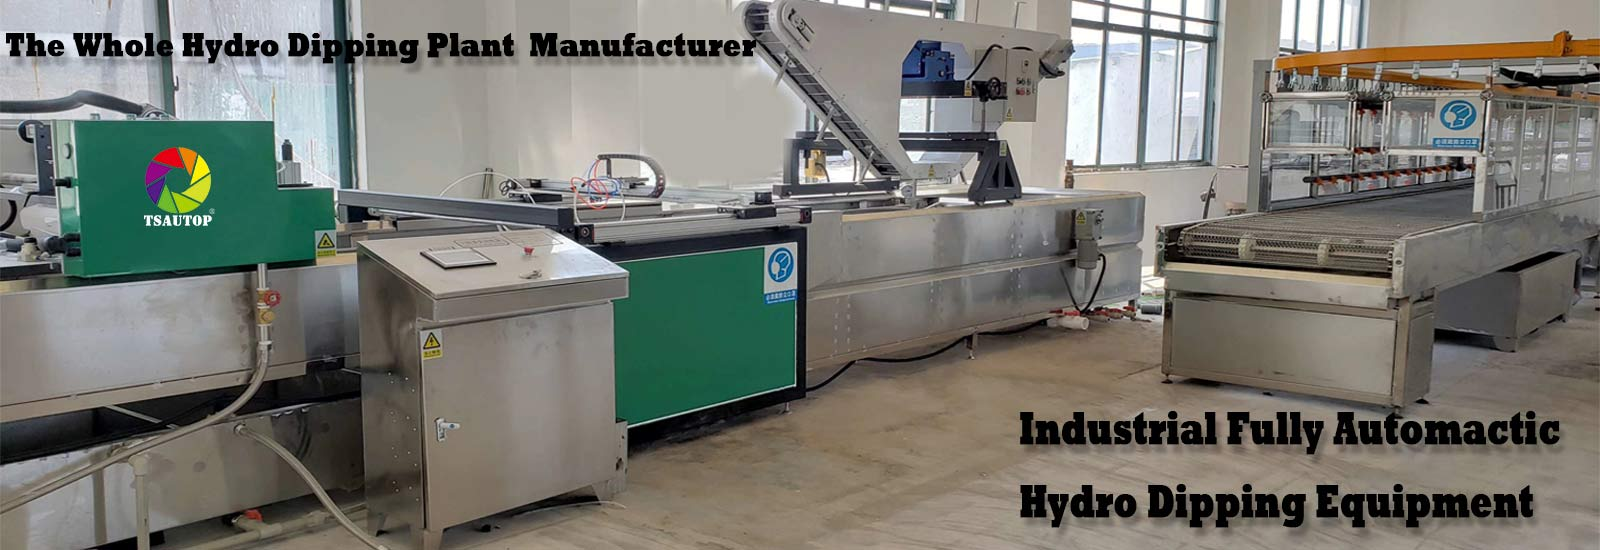 hydro dipping machine banner